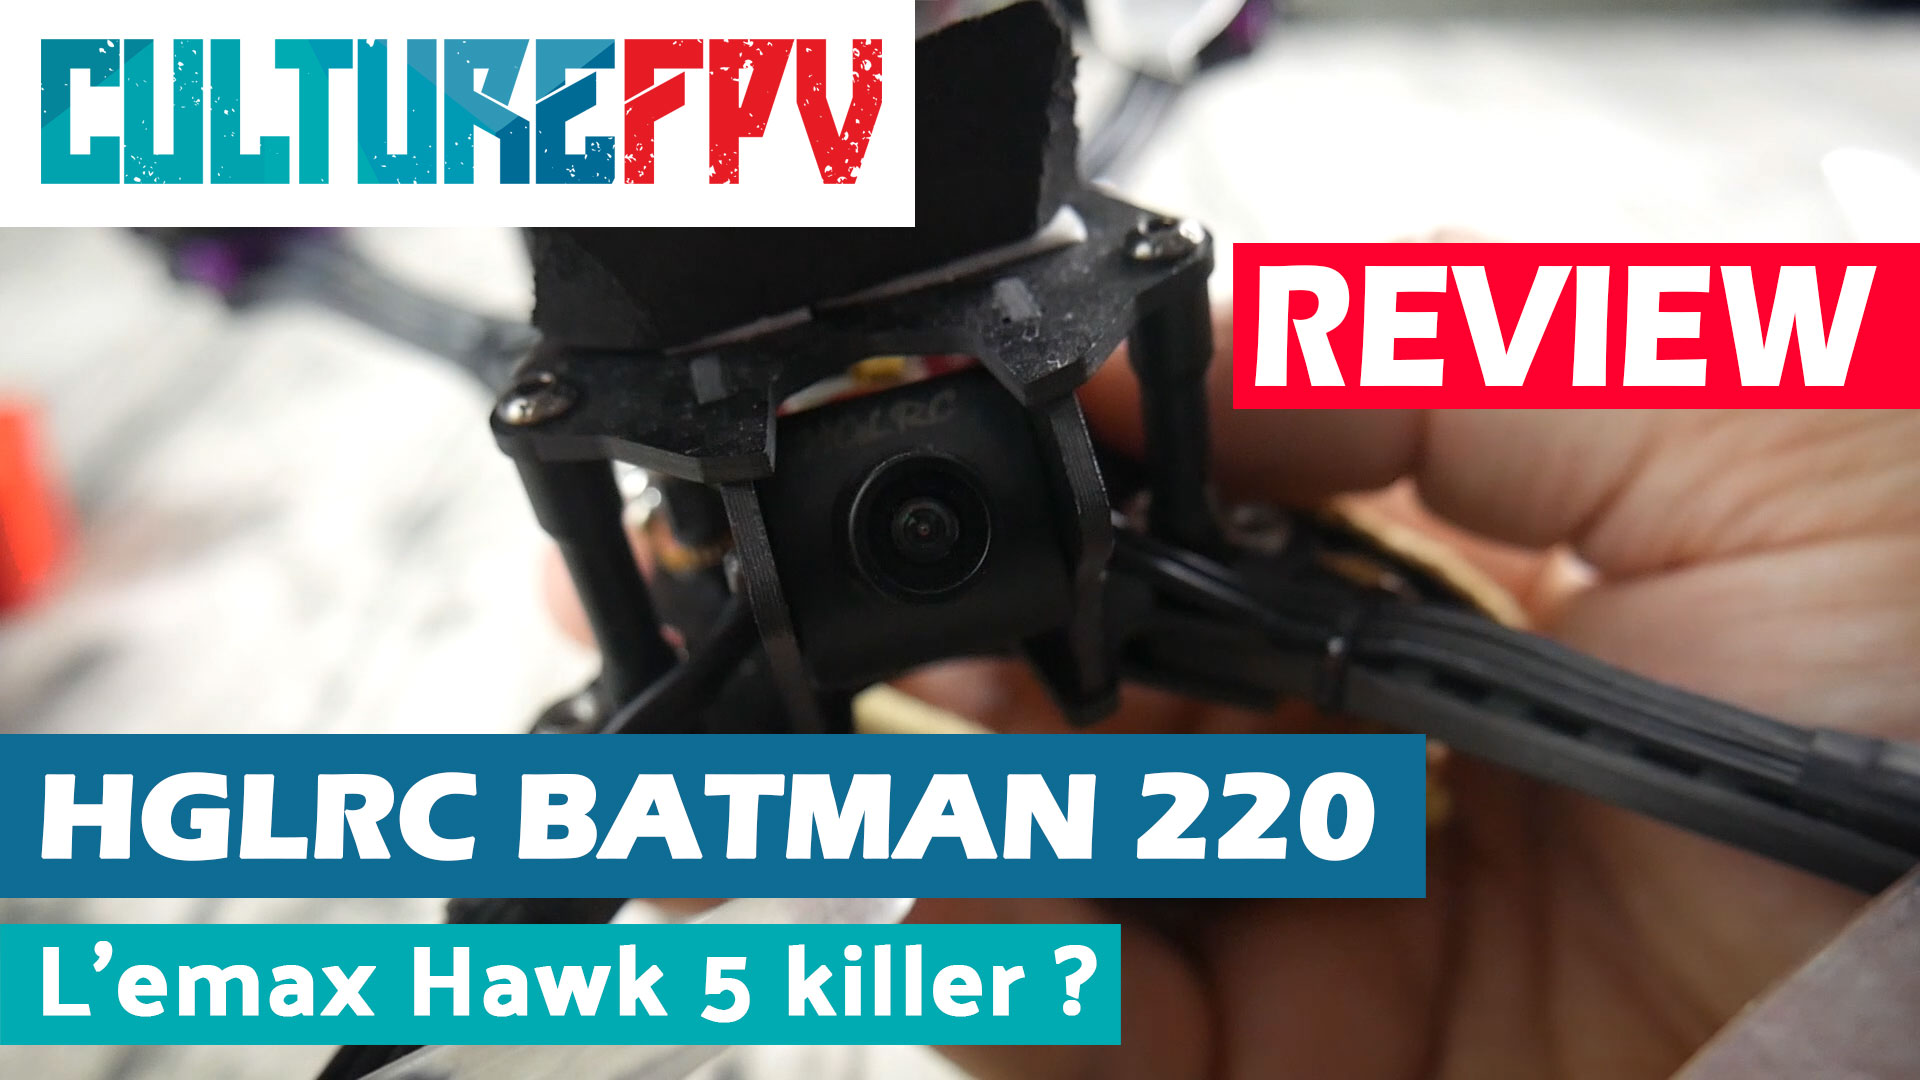 HGLRC Batman 220, l'emax Hawk 5 killer ?